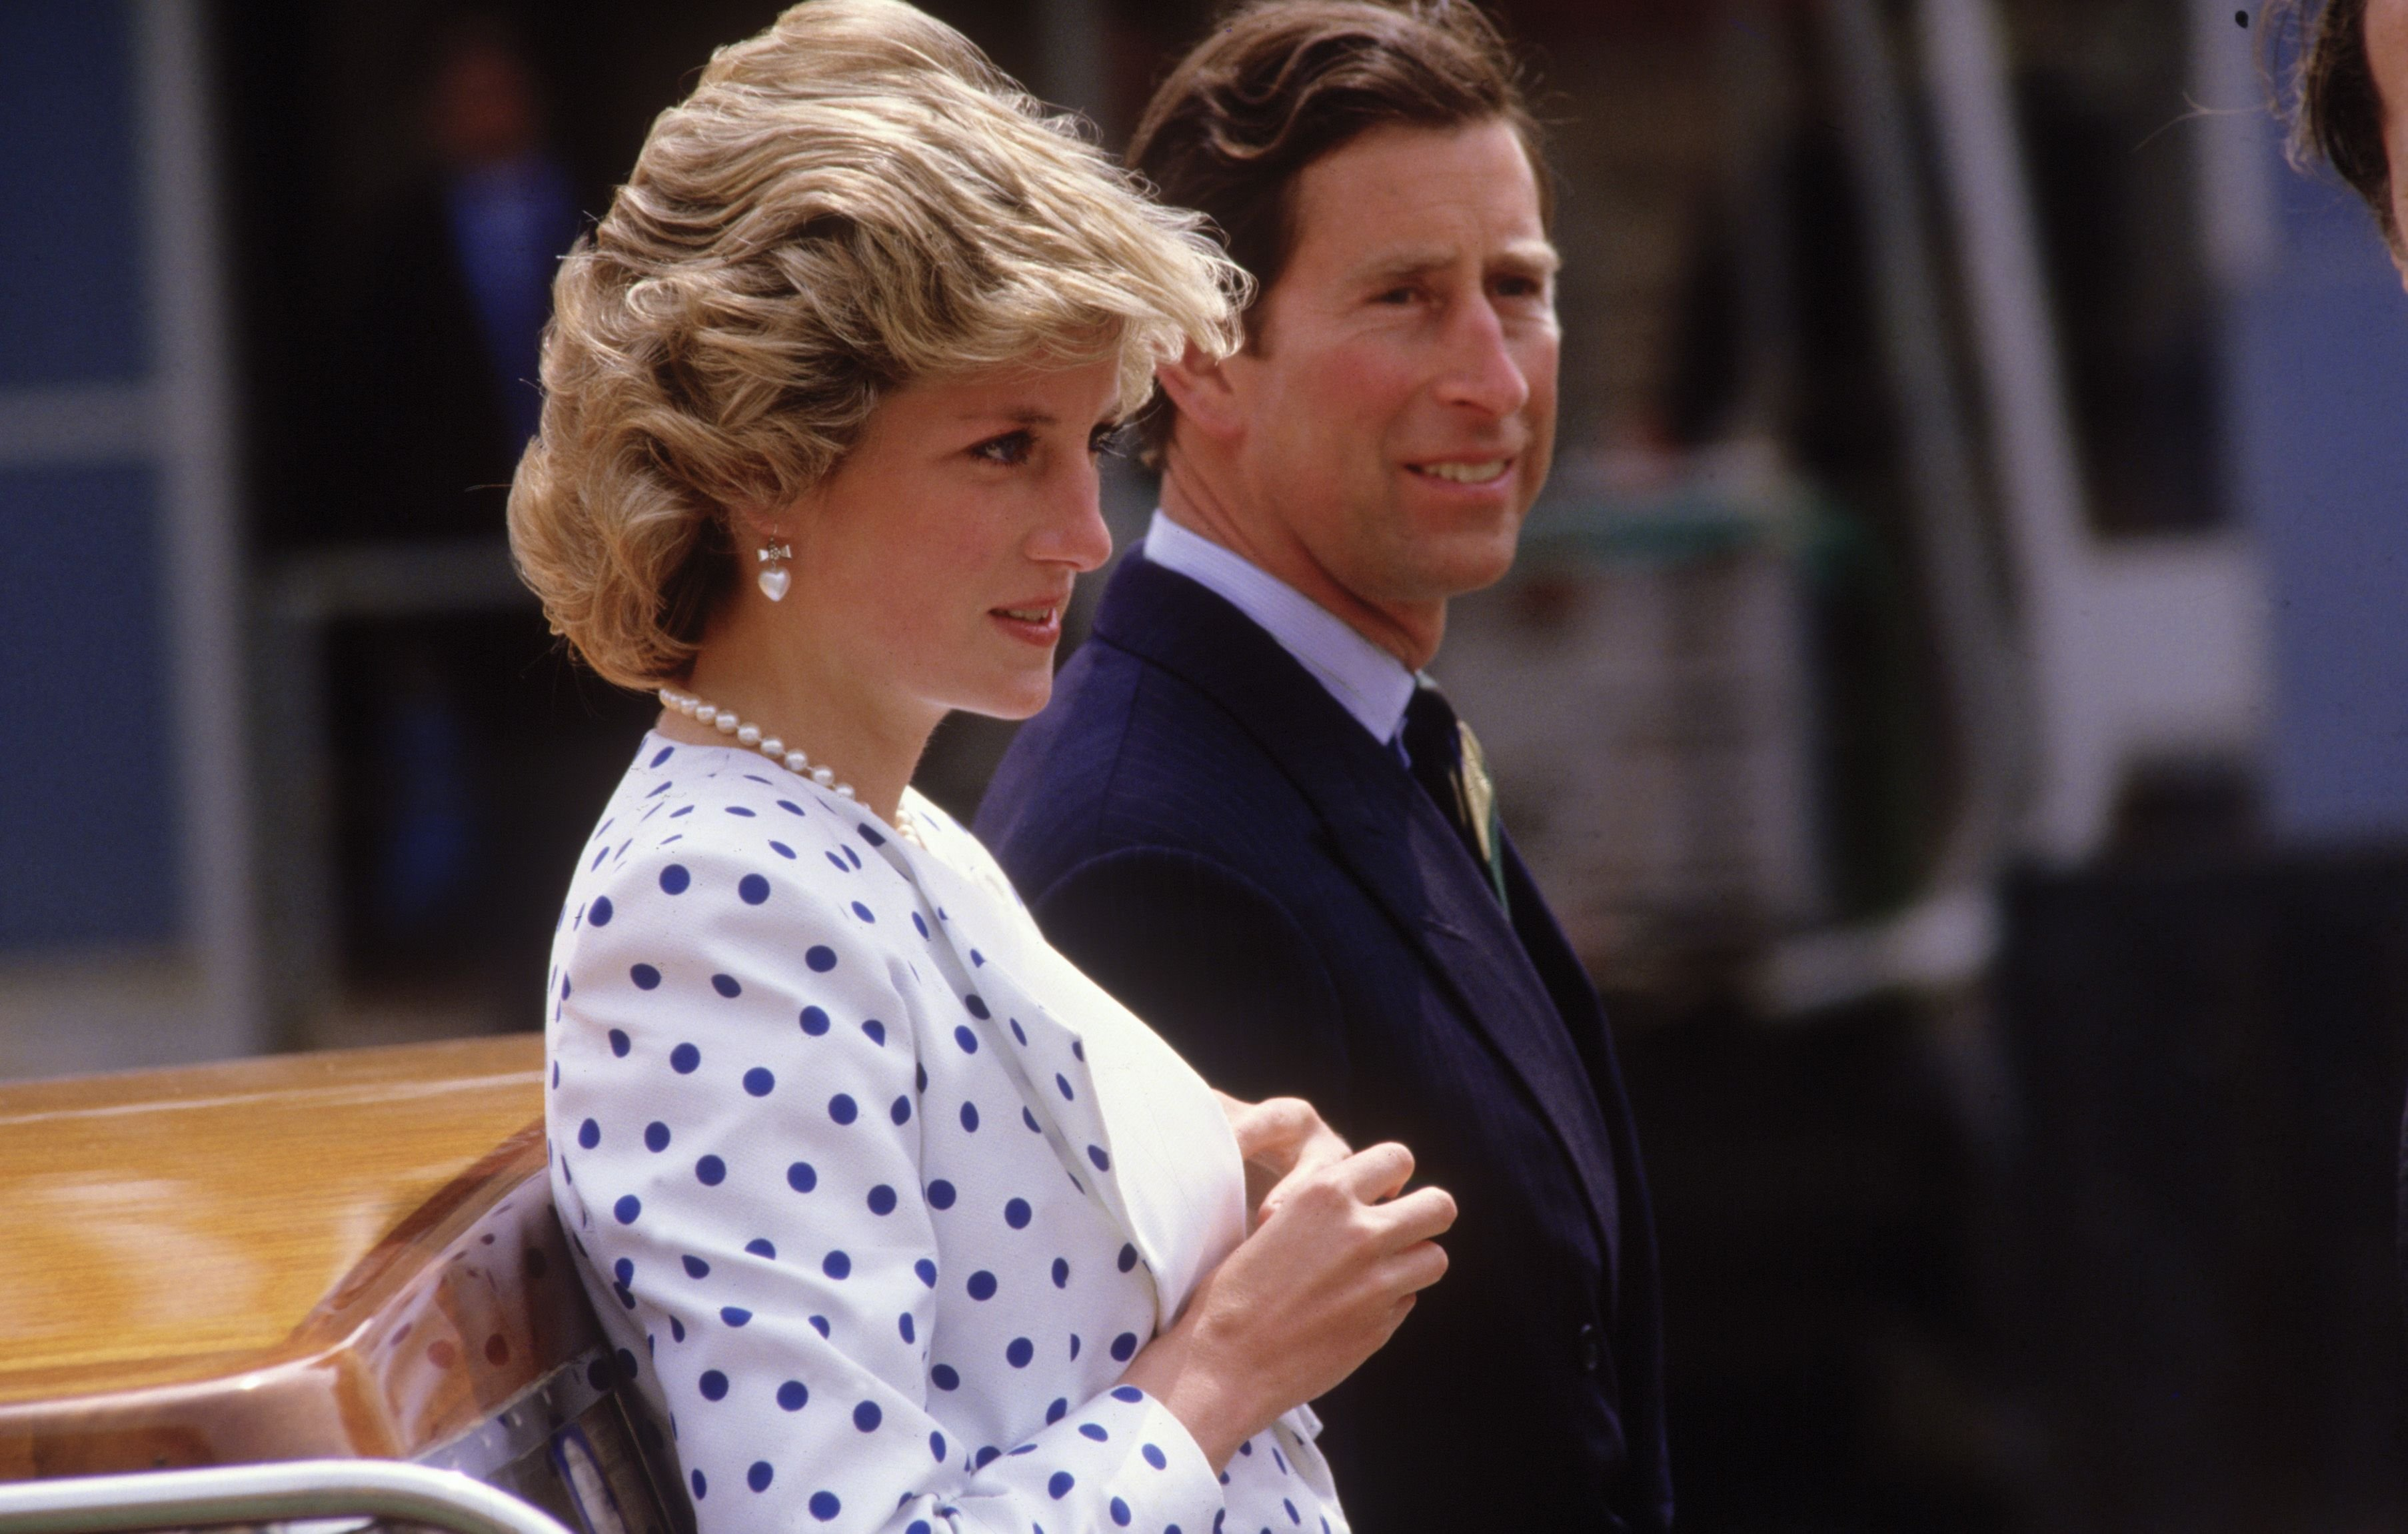 Diana Princess of Wales and Prince Charles travel by motor boat along the Grand Canal in Venice on May 4, 1985 | Photo: Getty Images